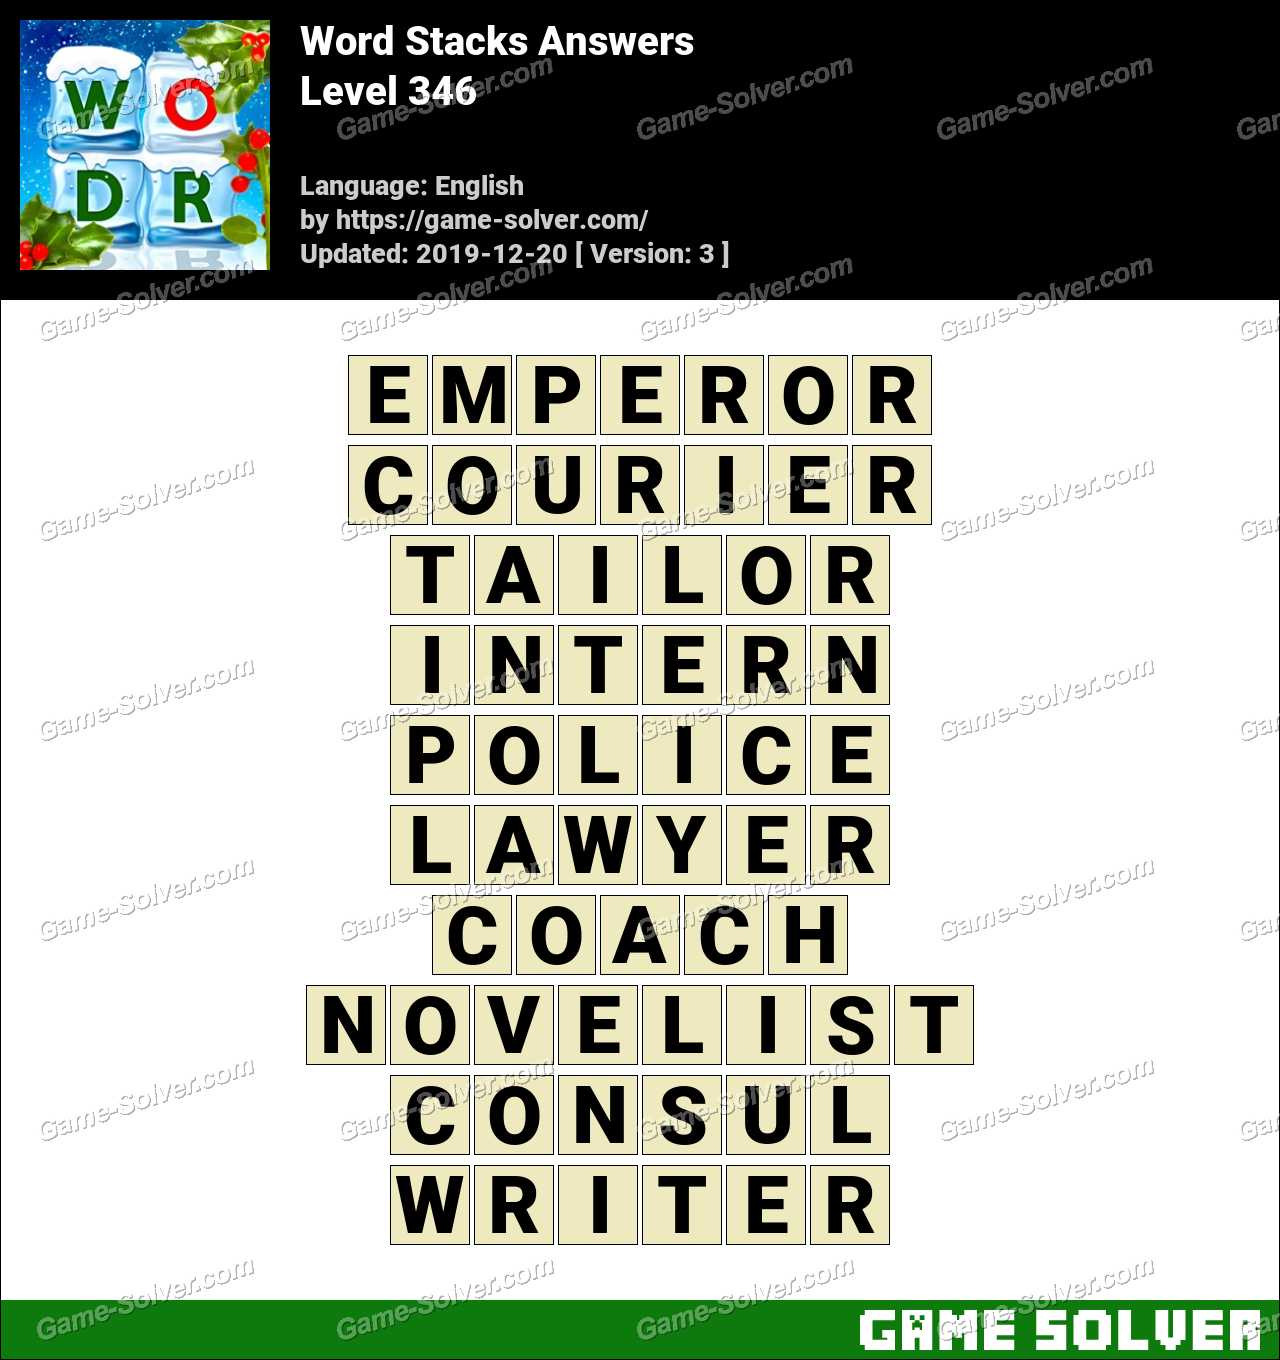 Word Stacks Level 346 Answers